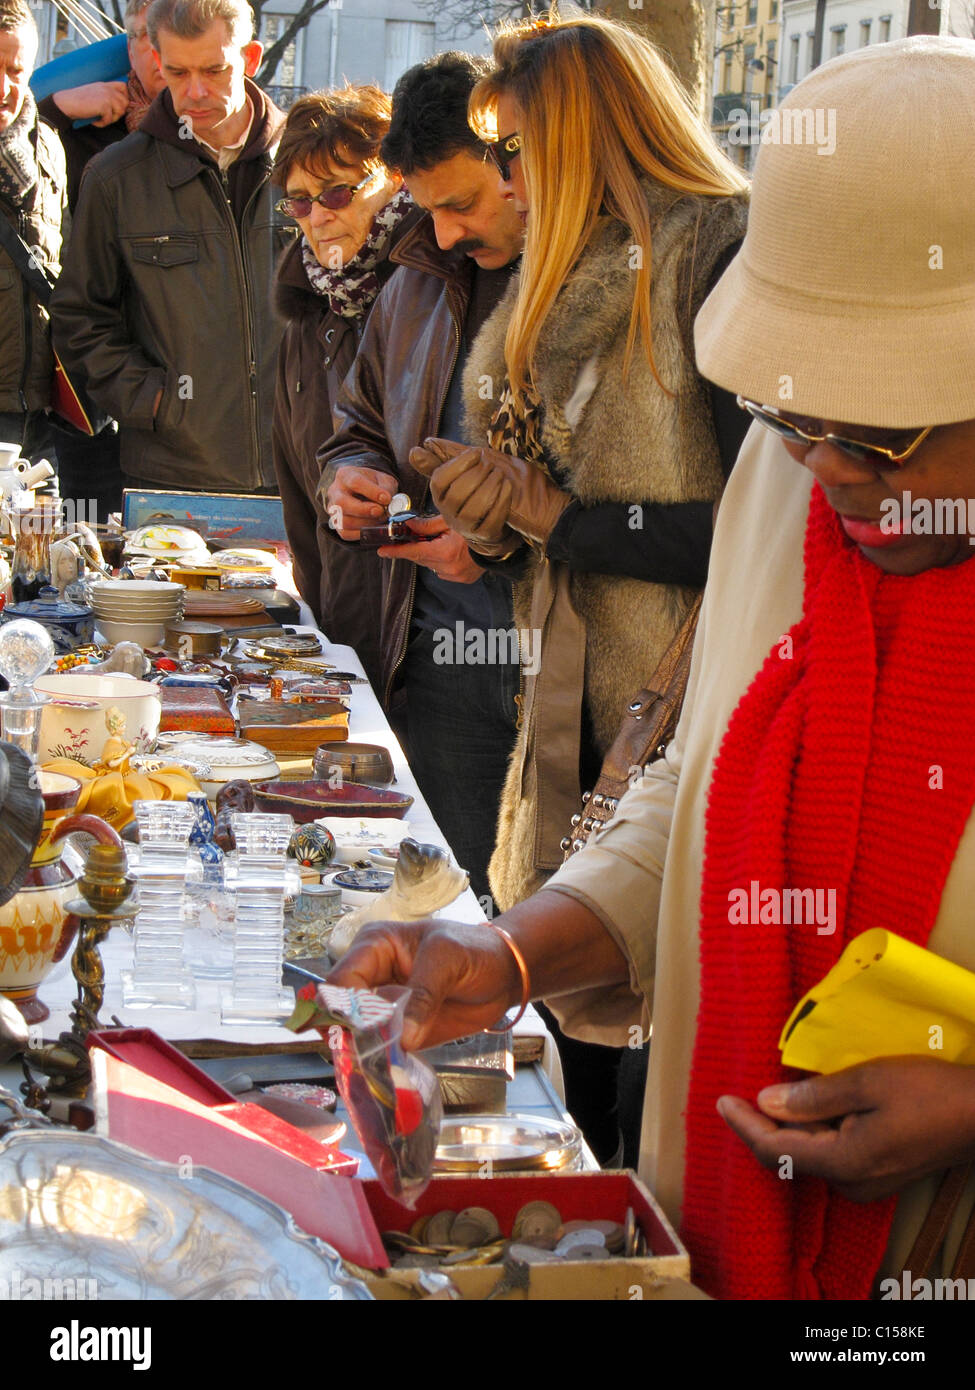 Brocante Cours De Vincennes Paris France Group People Shopping In French Flea Market